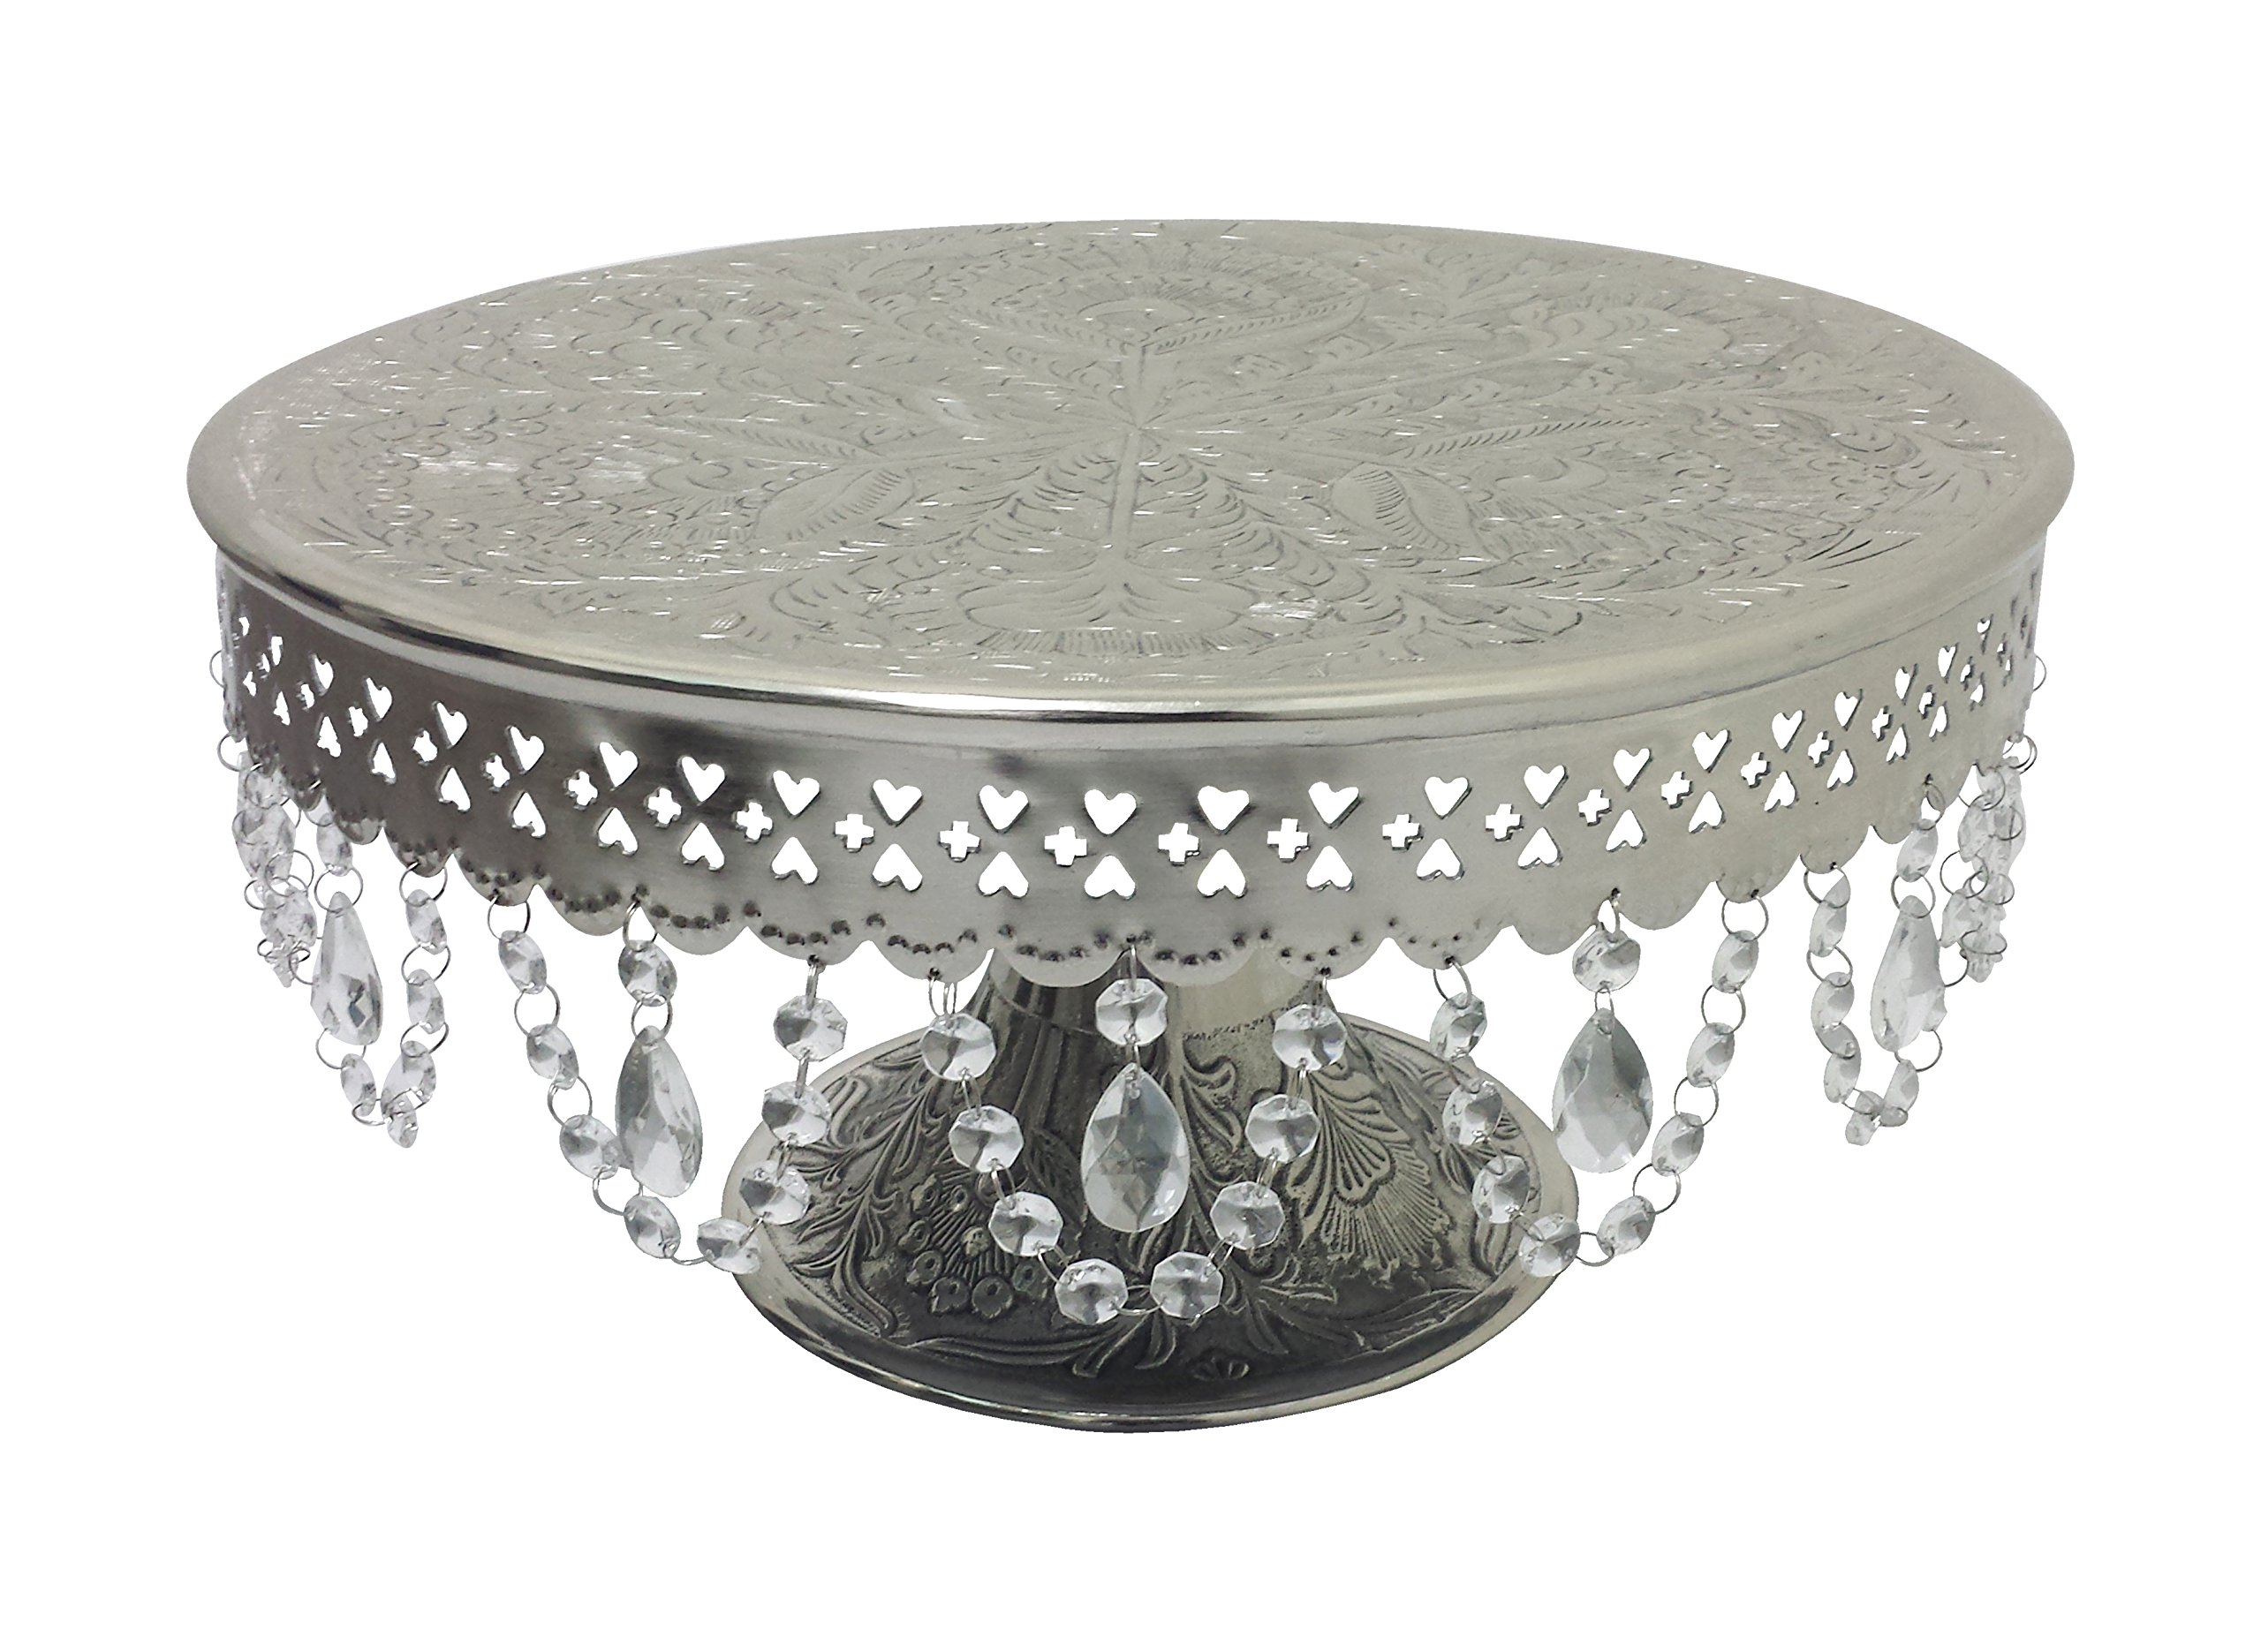 GiftBay Creations Wedding Cake Stand Round Pedestal Silver finish 18'' with Clear Hanging Glass Crystals (844-18R)